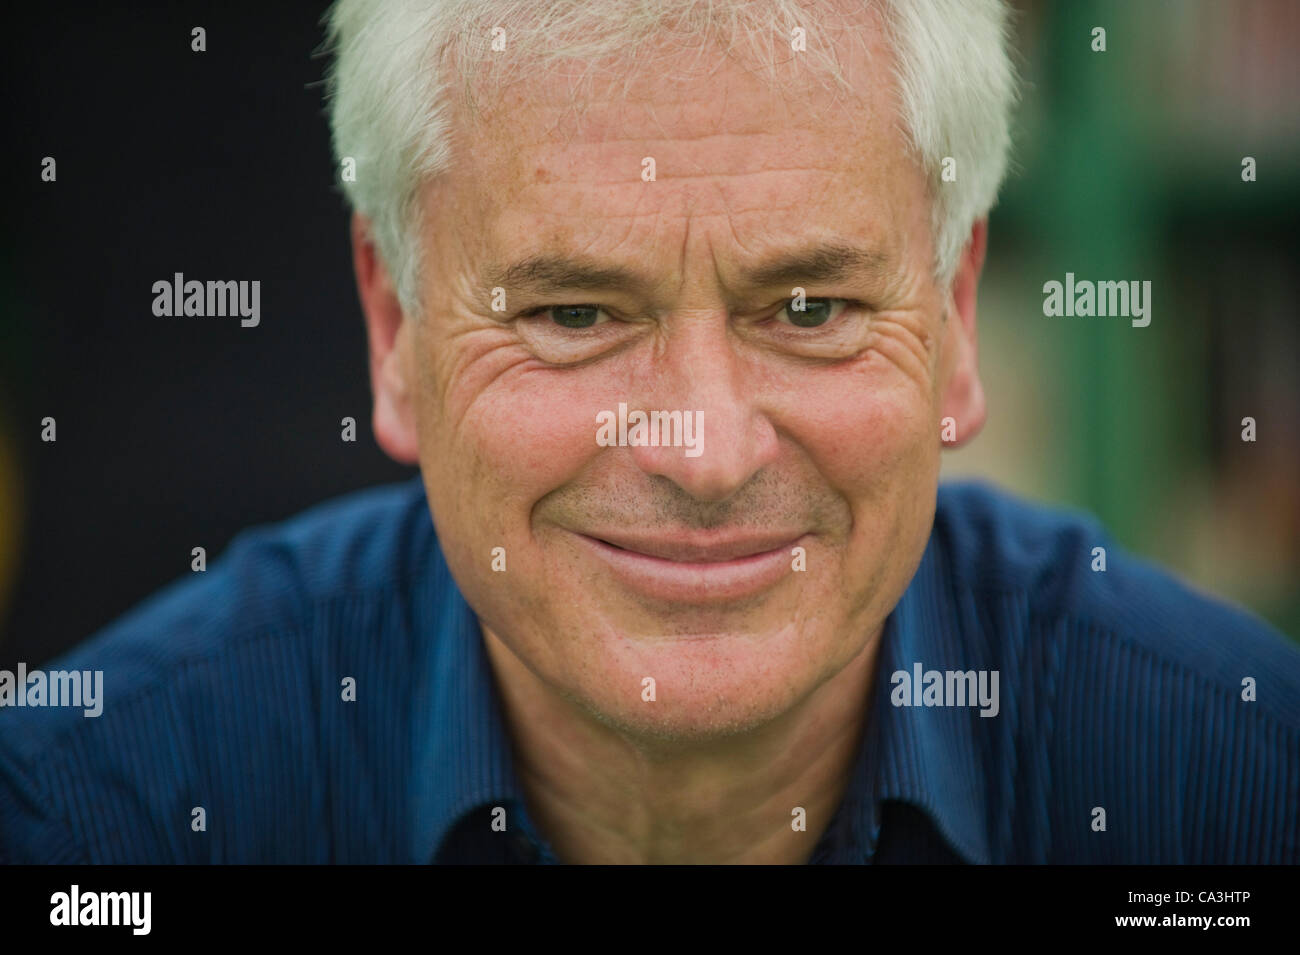 Friday 1st June 2012. Ian Robertson, Professor of Psychology, pictured at The Telegraph Hay Festival, Hay-on-Wye, - Stock Image